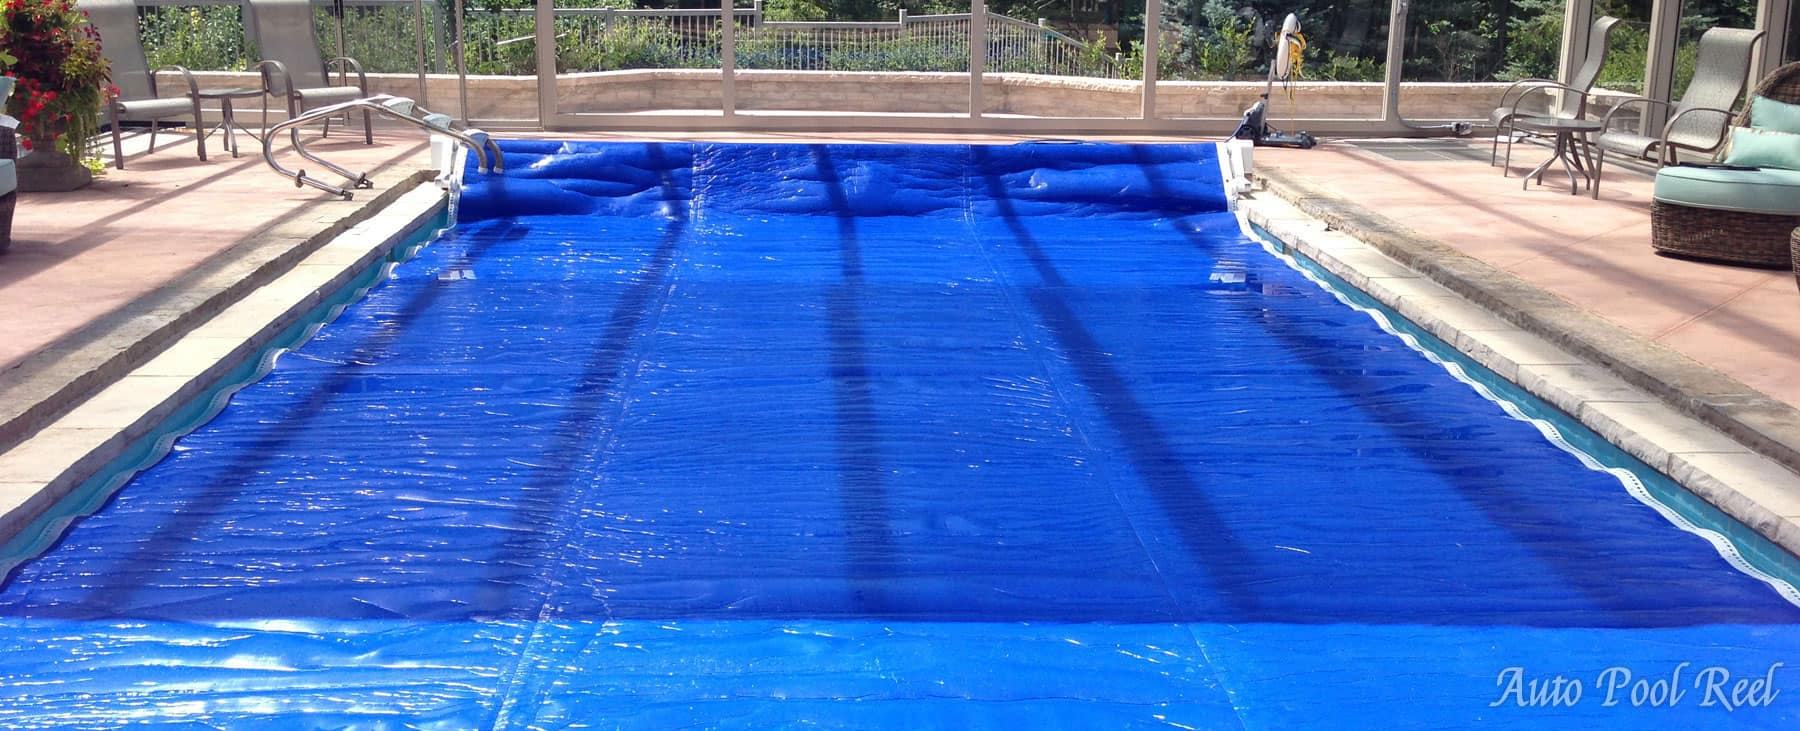 pool cover roller,auto pool covers,automatic inground pool covers